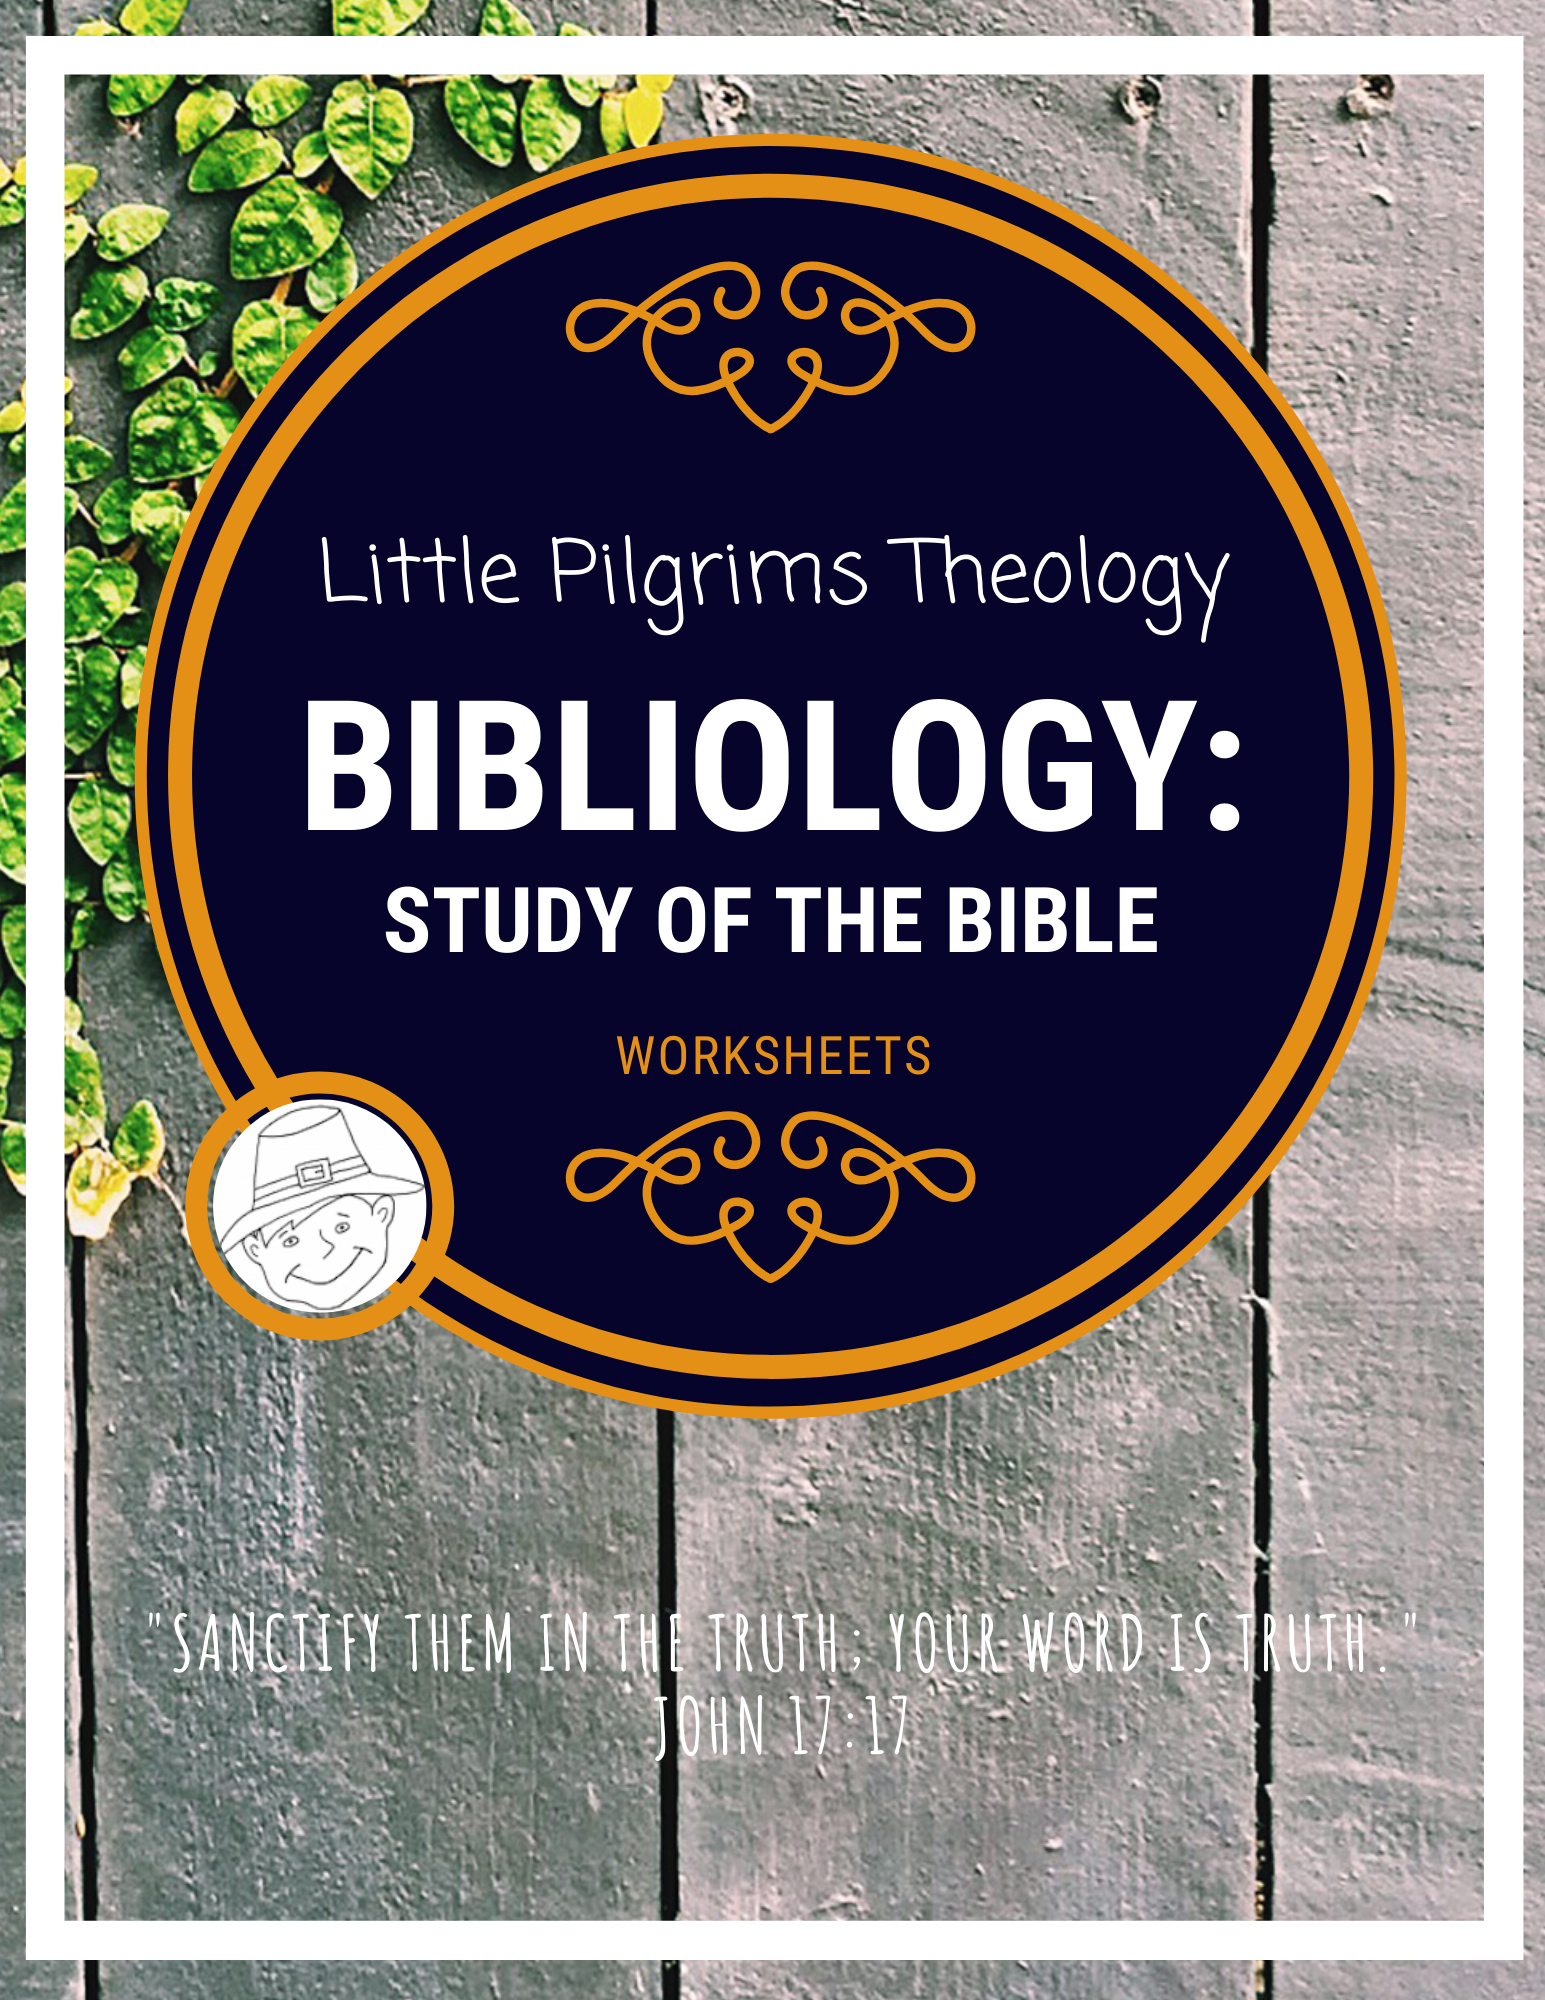 bibliology-book-button